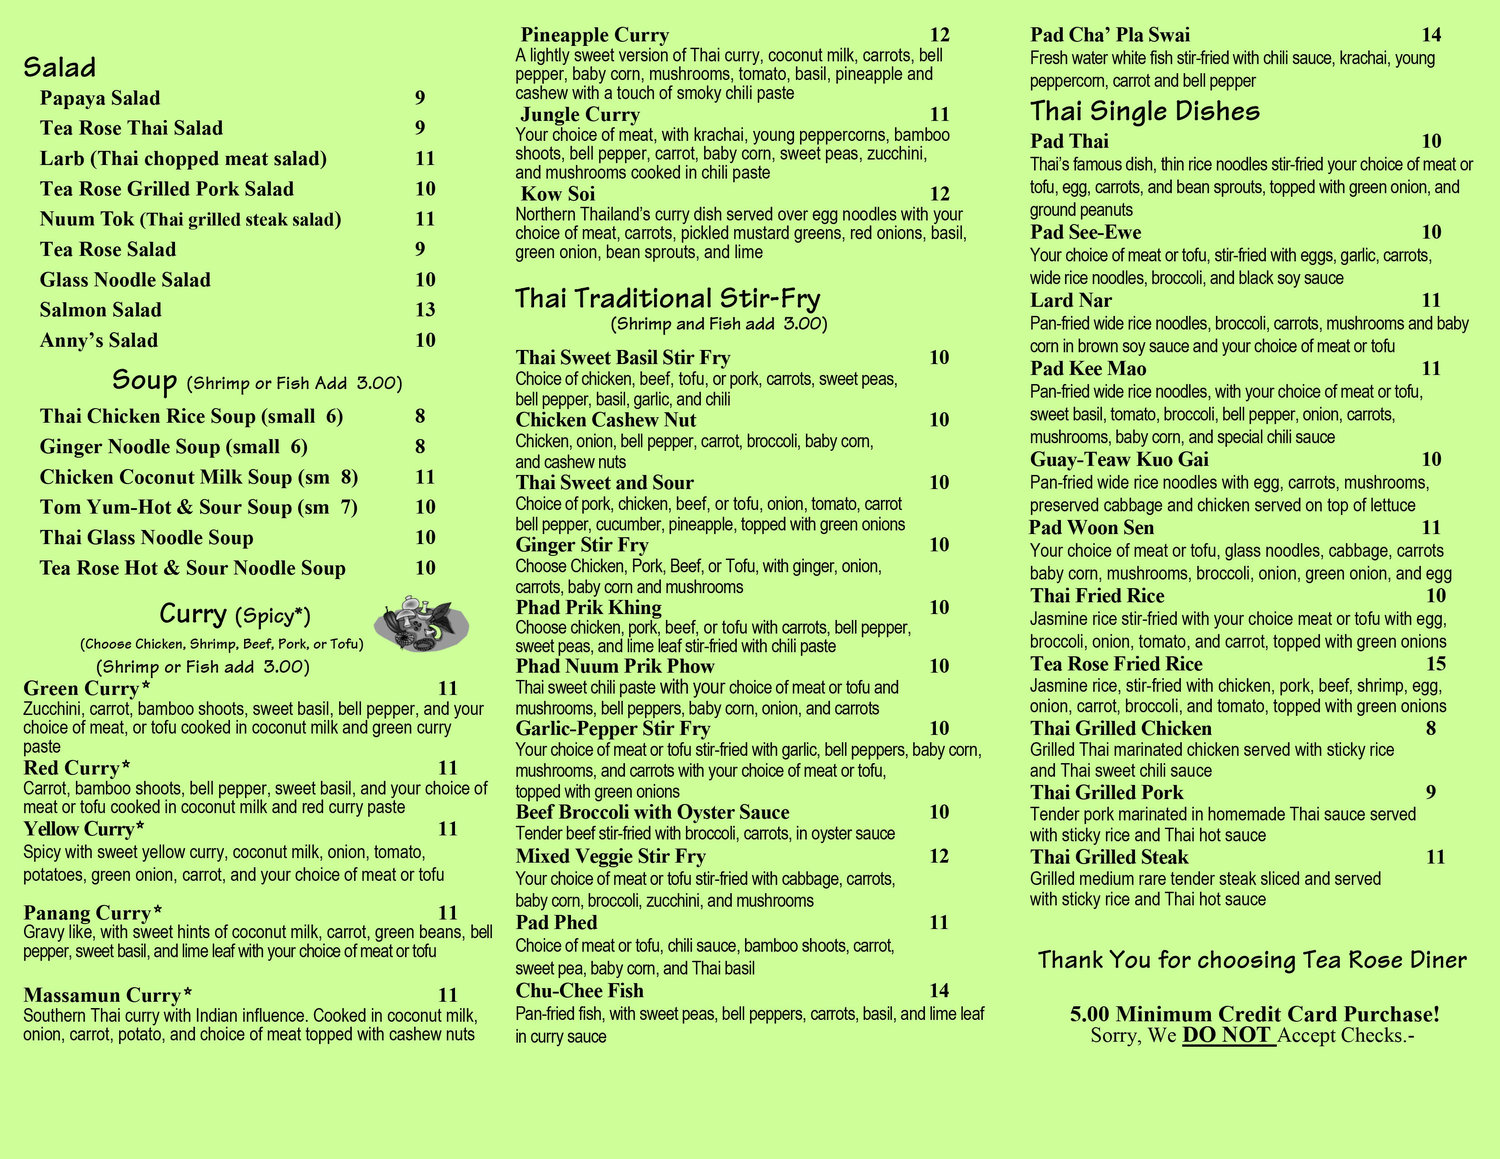 Tea Rose Diner menu